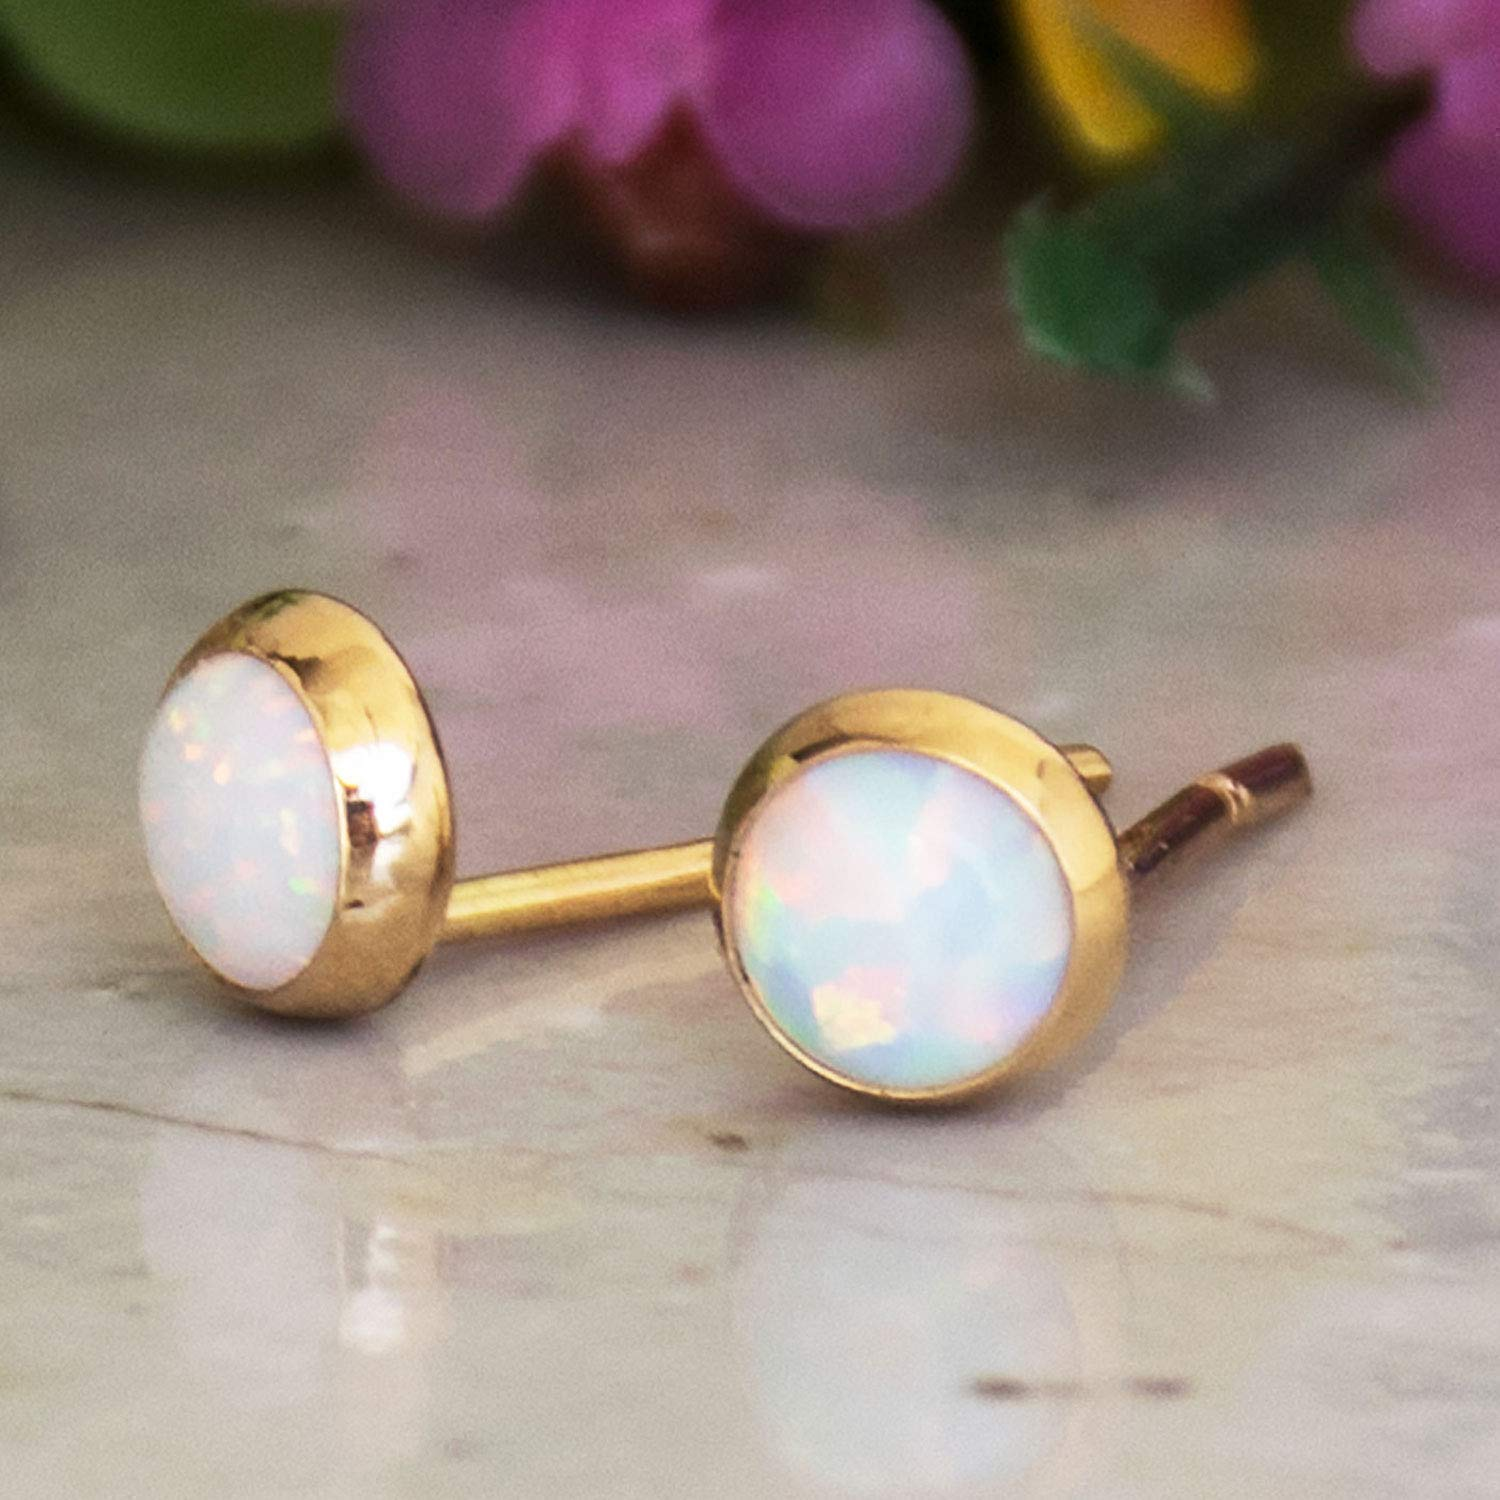 4mm Opal October Birthstone Tiny Drop Dangle Earrings with Cute White Gemstones Small Handmade Jewelry Gift for Young Women Dainty 14K Solid Yellow Gold White Opal Drop Earrings